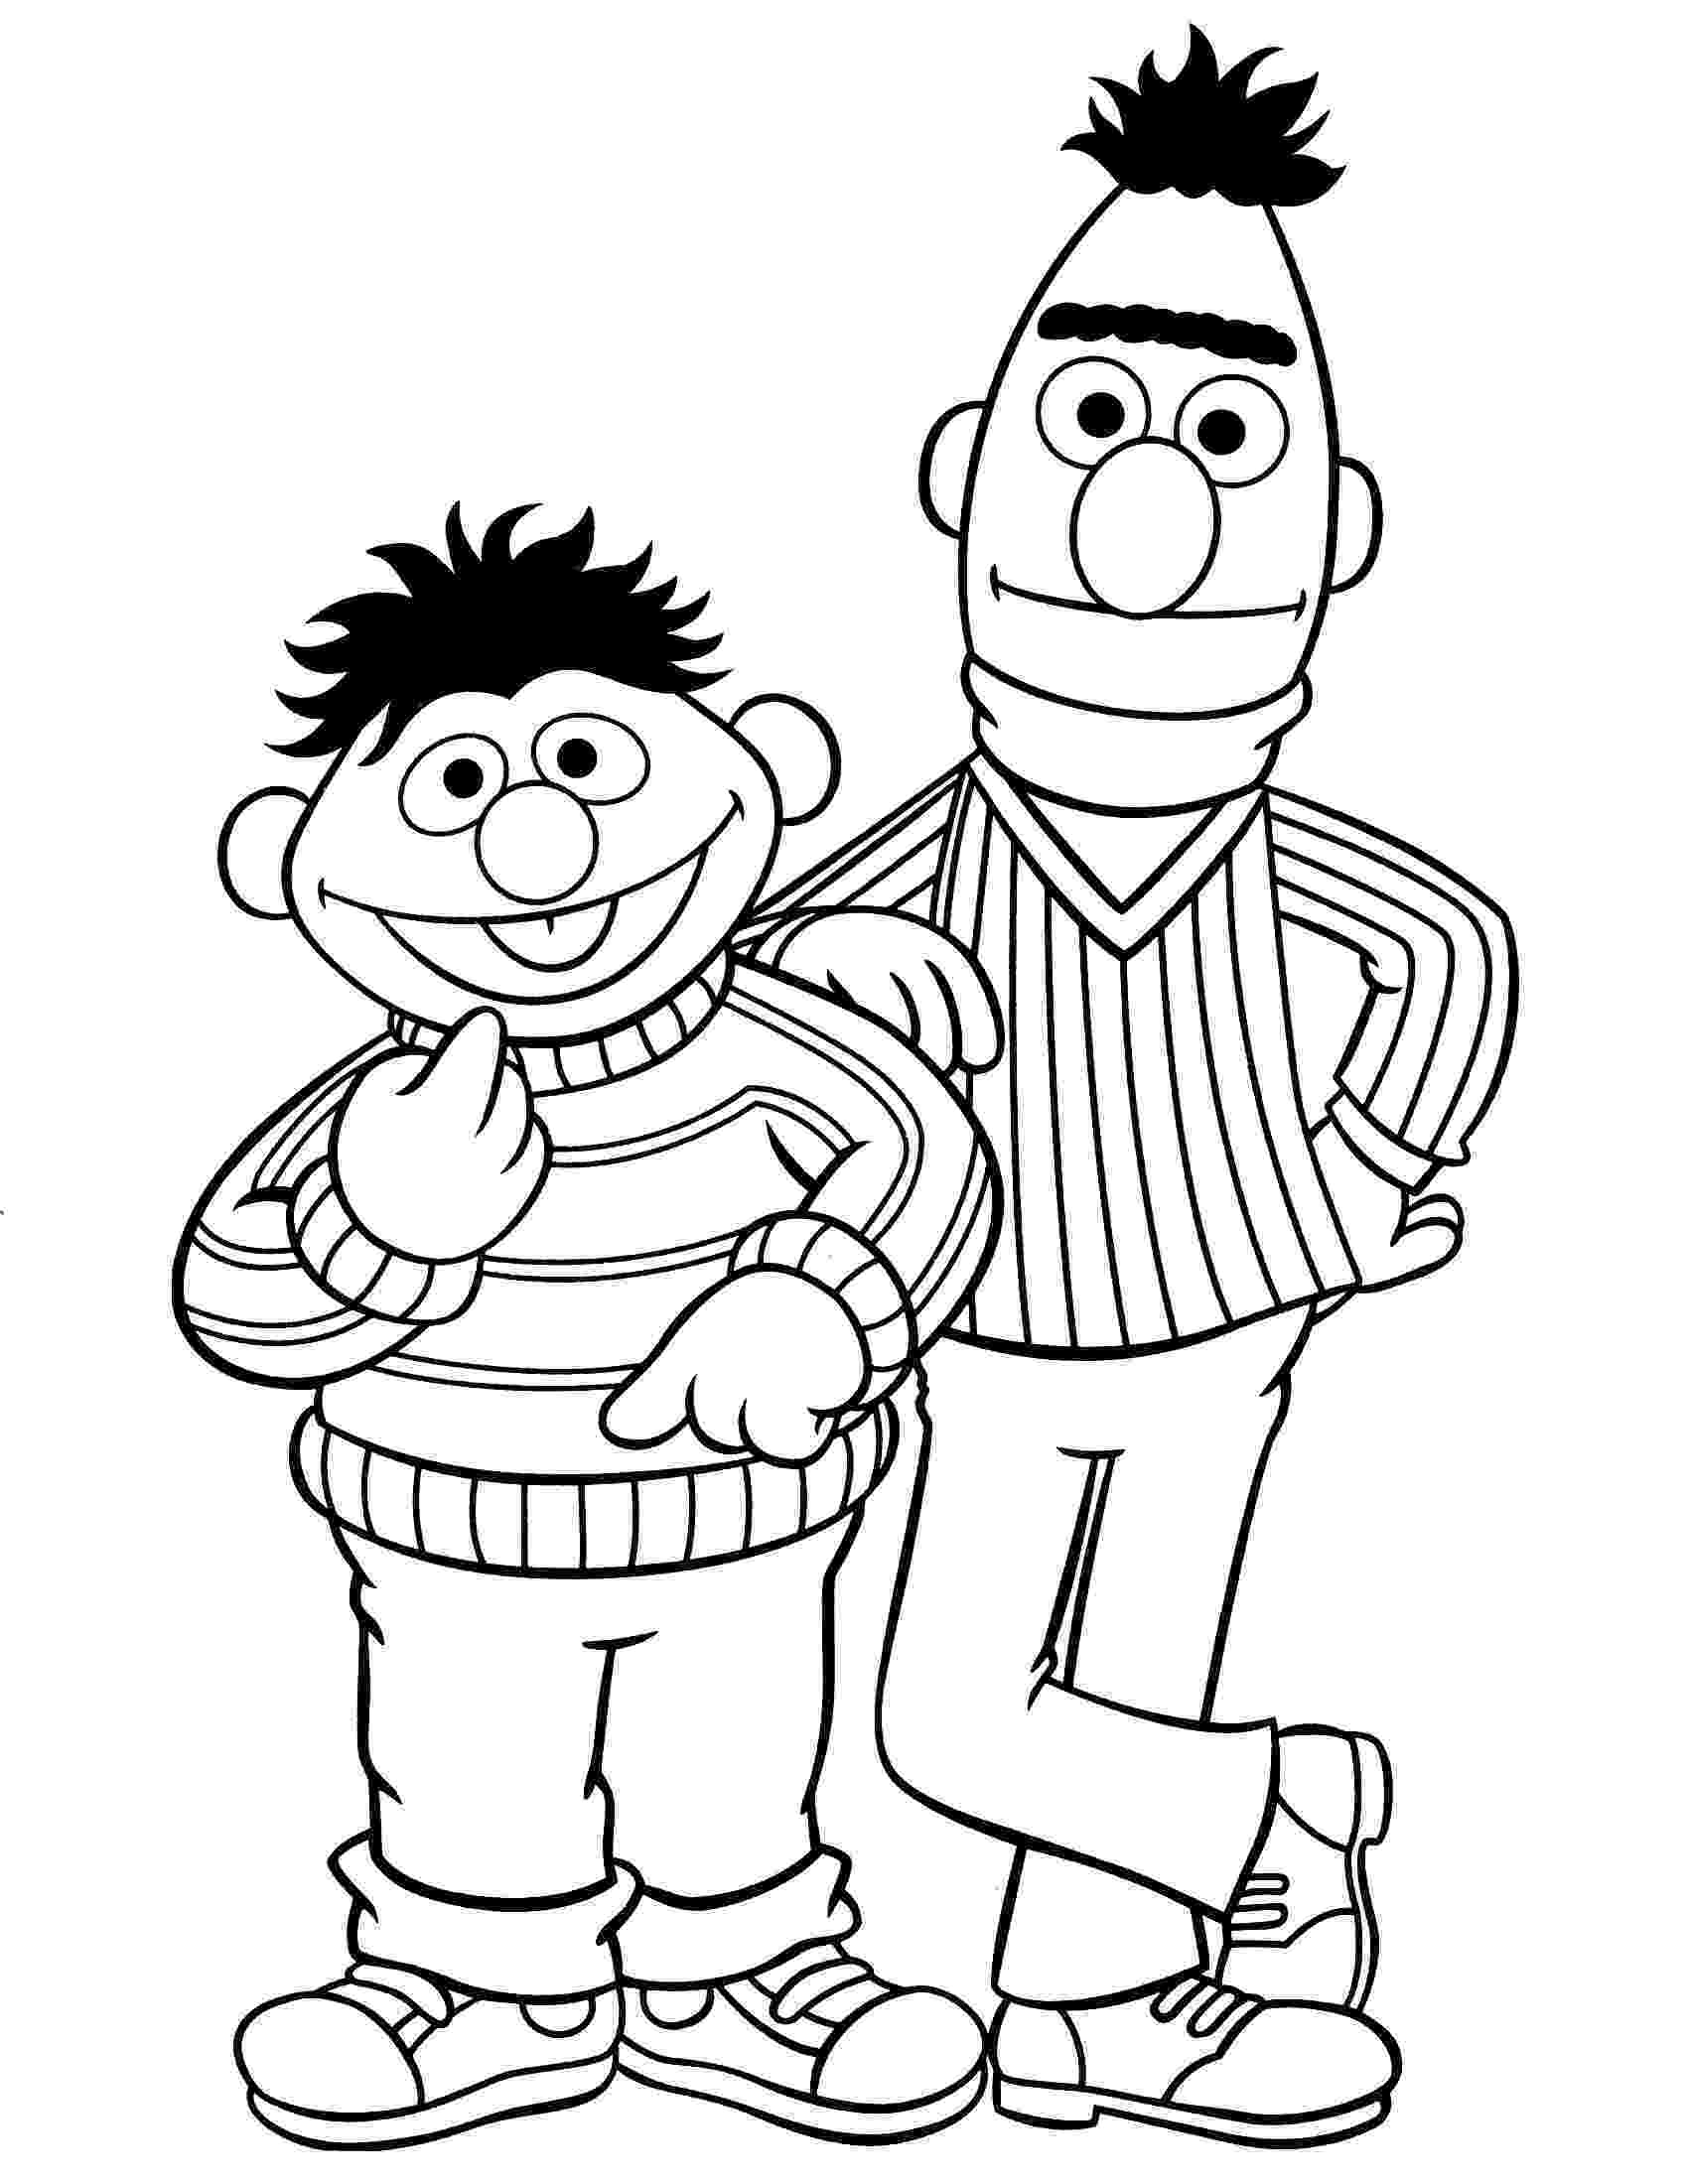 sesame street characters pictures to print printable pictures of sesame street characters coloring home characters to pictures street sesame print